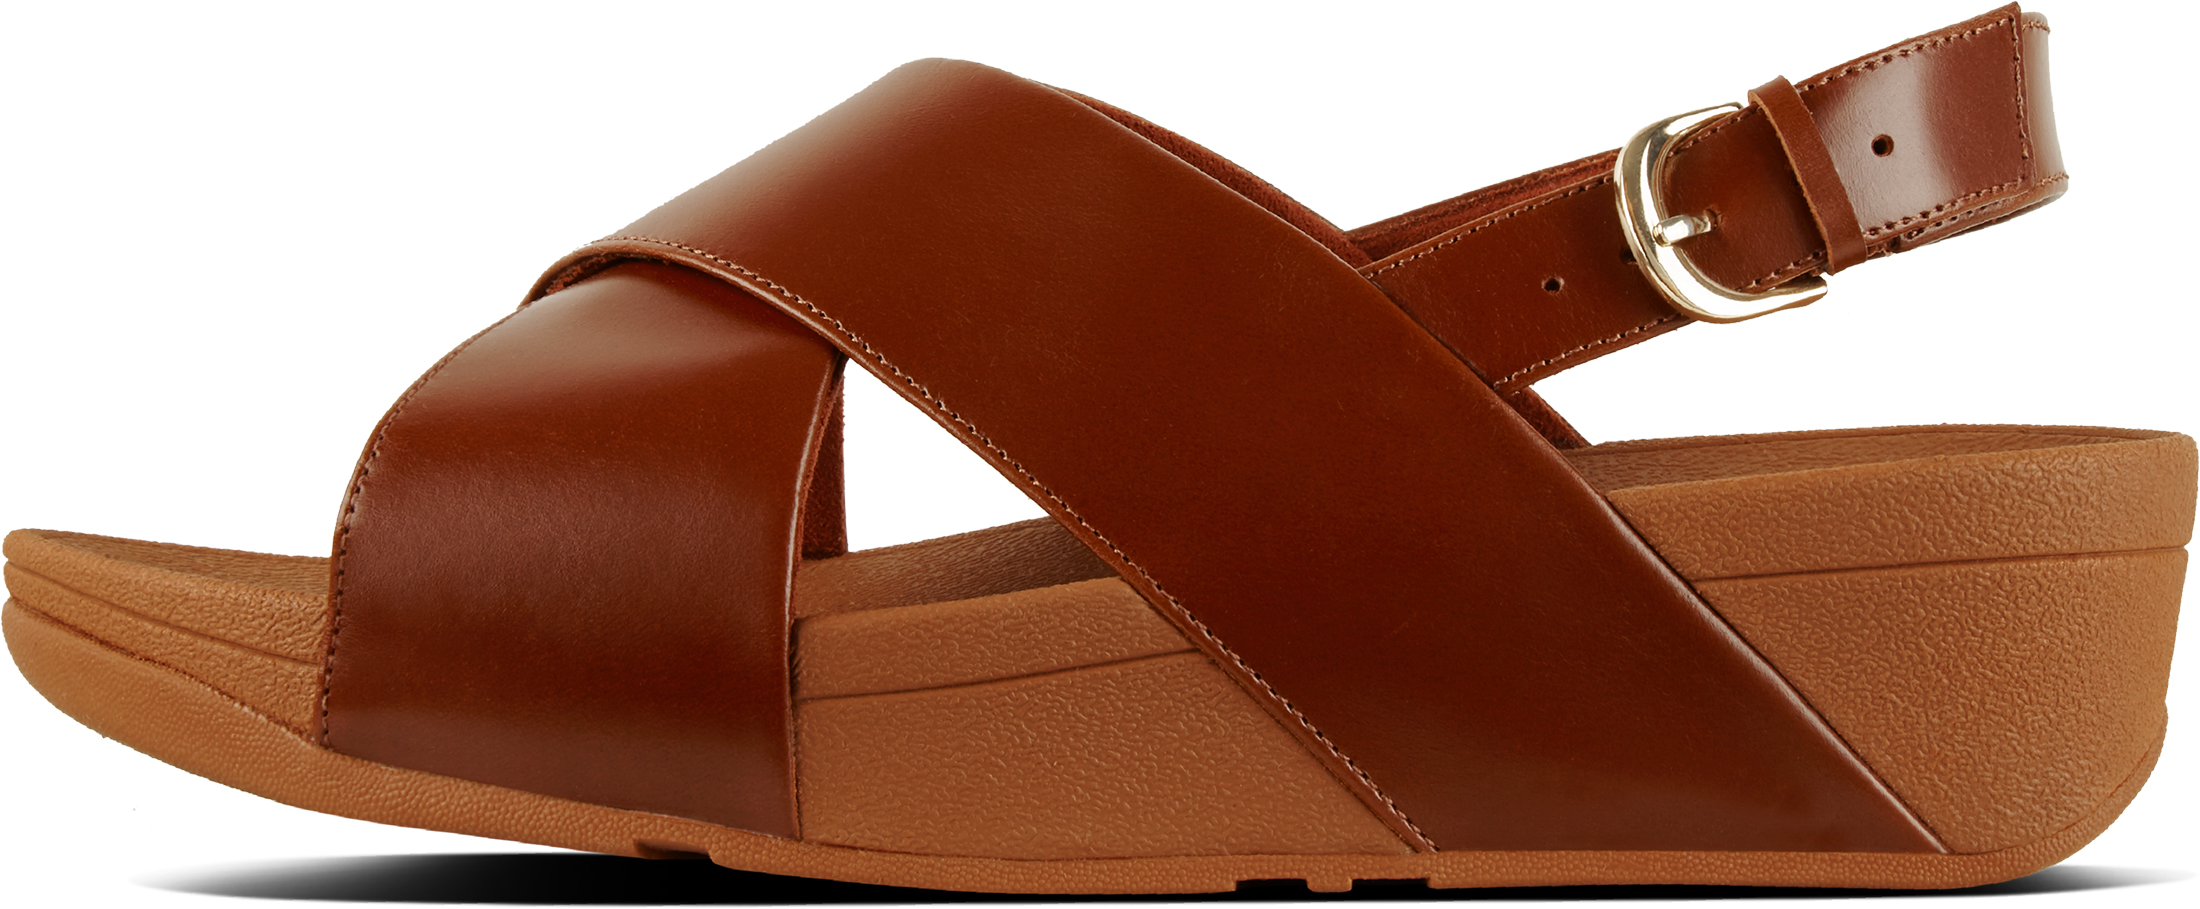 ed8e48735f12 FitFlop Women s Lulu Cross Back-strap Sandals Adjustable Heel Strap Uk5  Caramel. About this product. Picture 1 of 4  Picture 2 of 4  Picture 3 of 4  ...